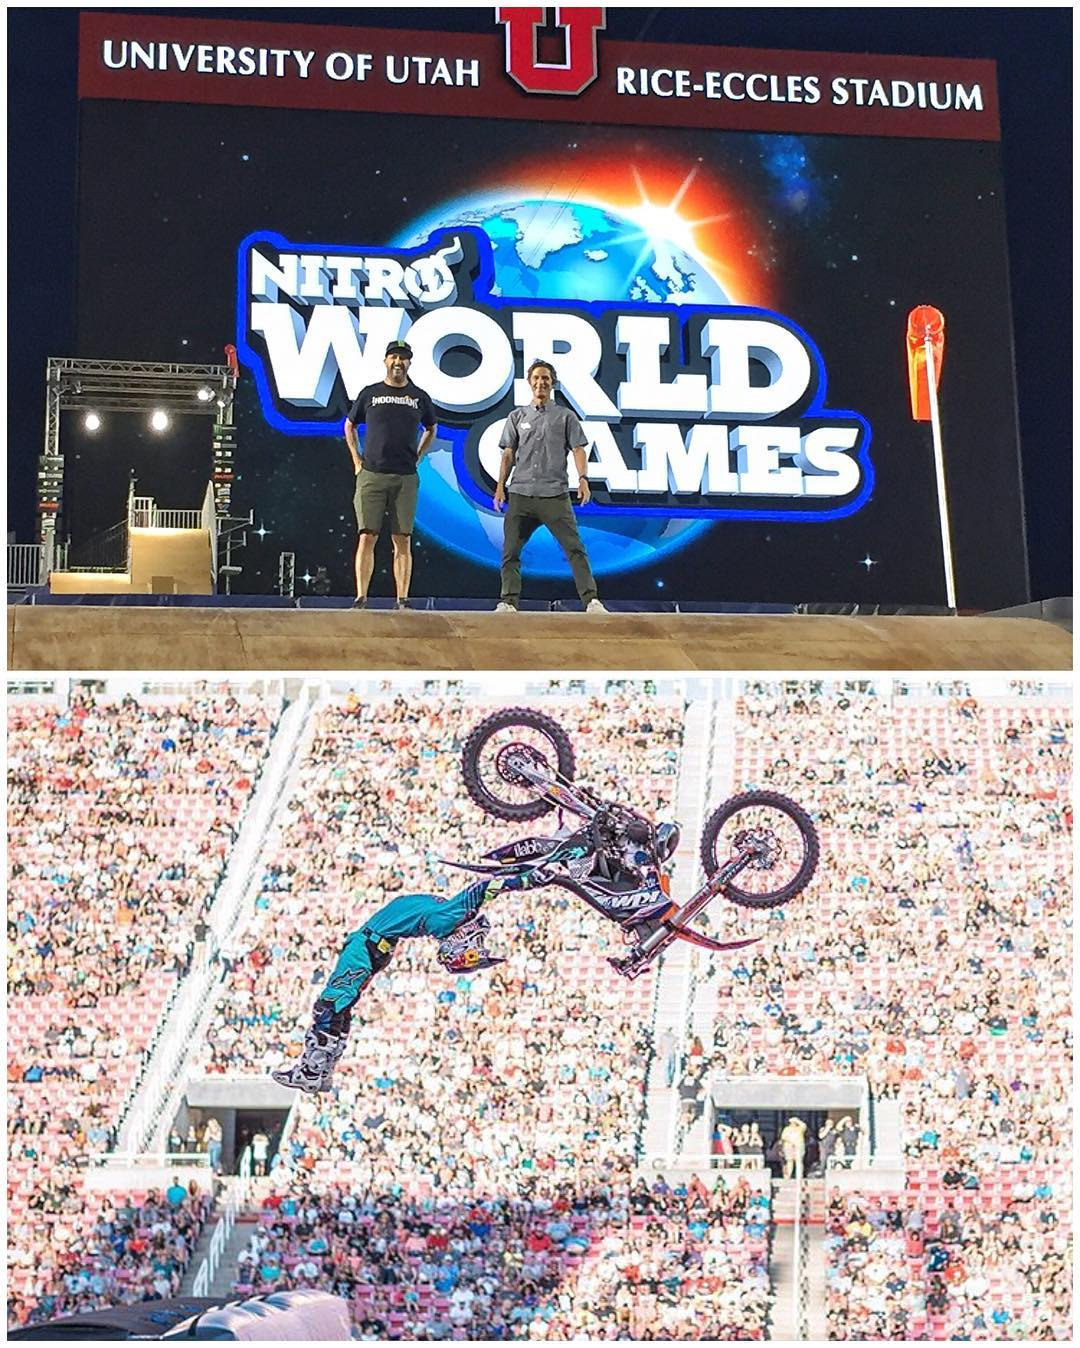 Last night's amazing entertainment: the @NitroCircus #NitroWorldGames in Salt Lake City! Not only did they put on an awesome show, but everyone's riding was beyond insane: triple flips in BMX, double front flips and double backflip variations in...